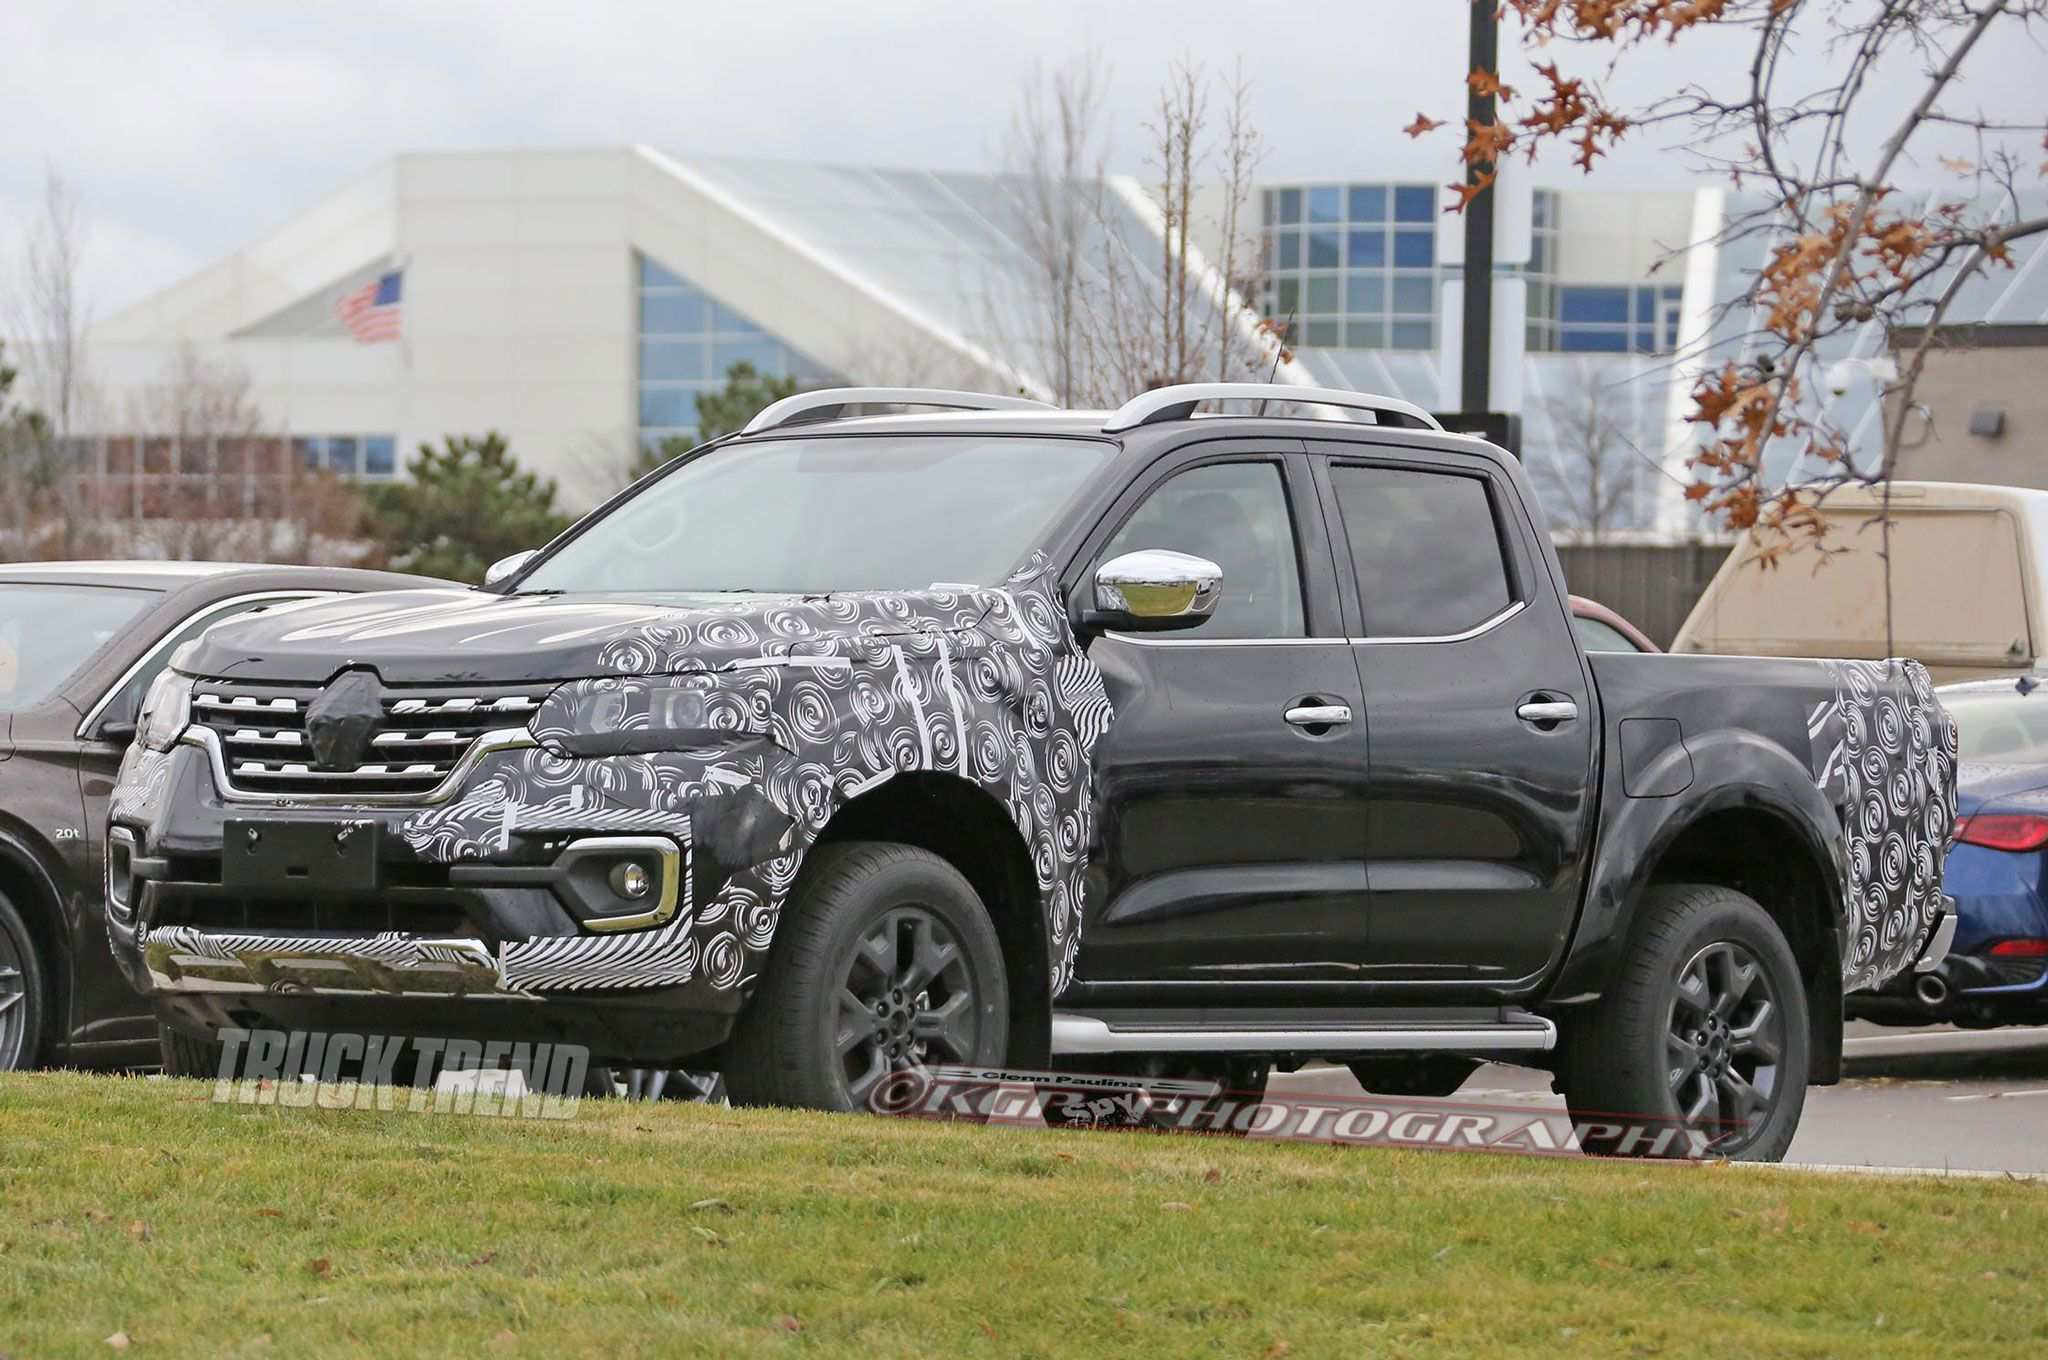 67 The Best 2020 Nissan Frontier Images